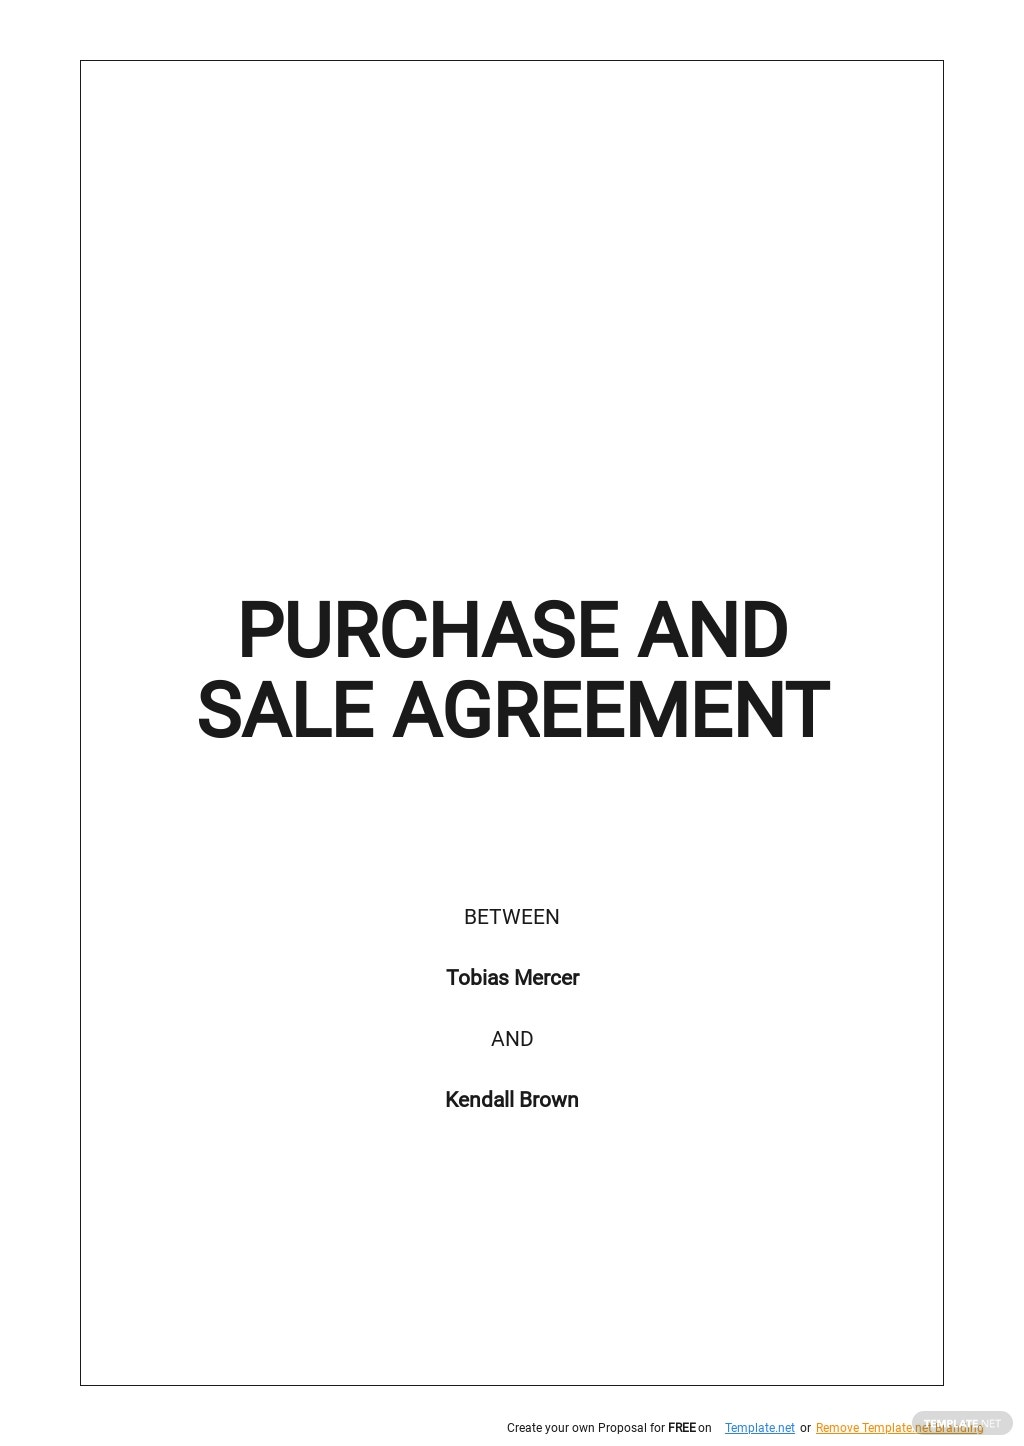 Purchase and Sale Agreement Template.jpe